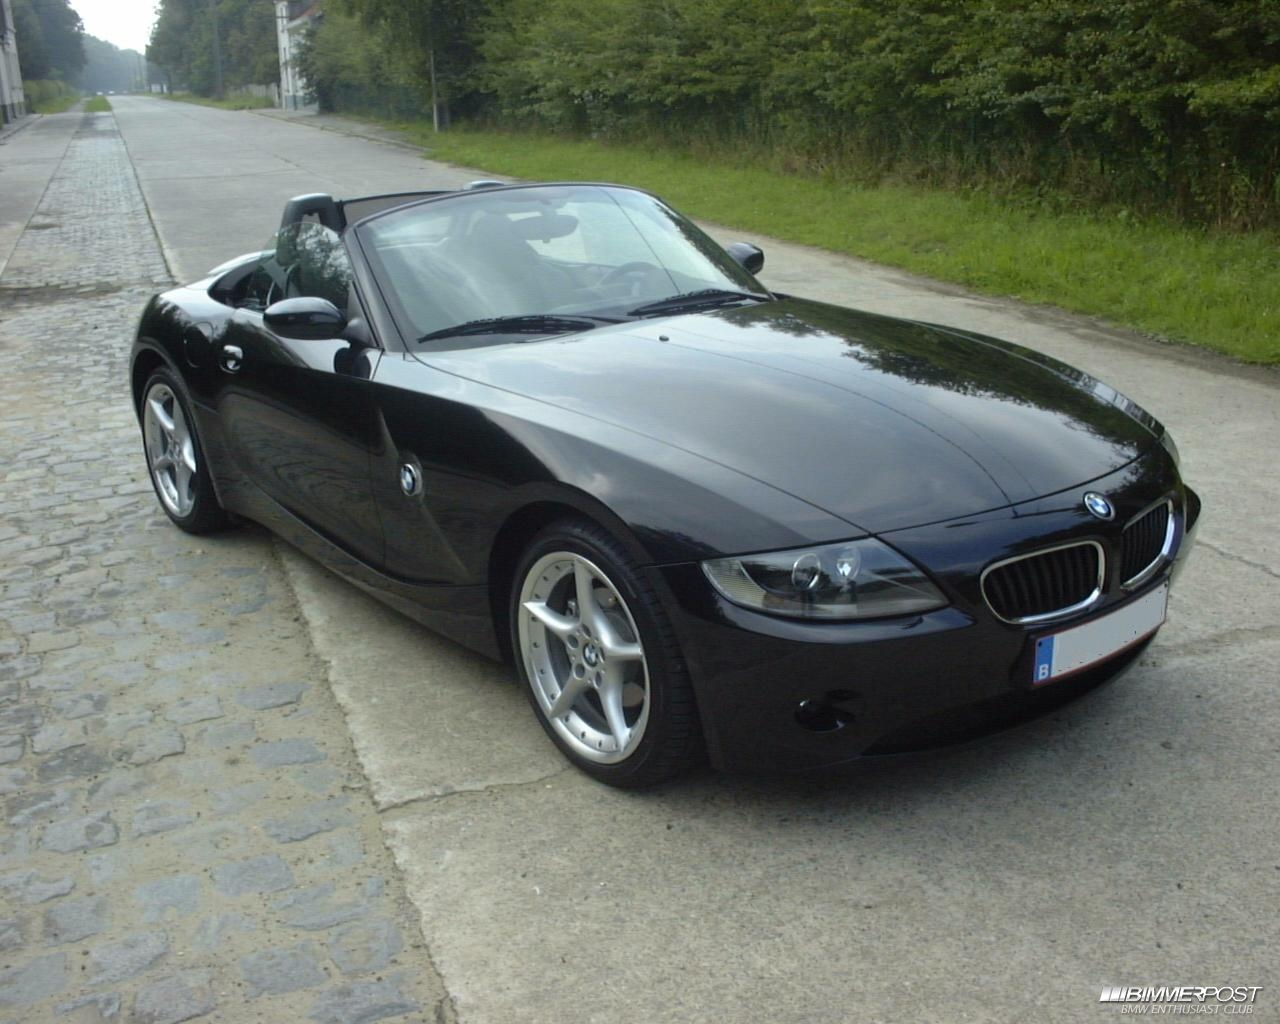 Moneyfor S 2004 Bmw Z4 E85 2 5i Bimmerpost Garage